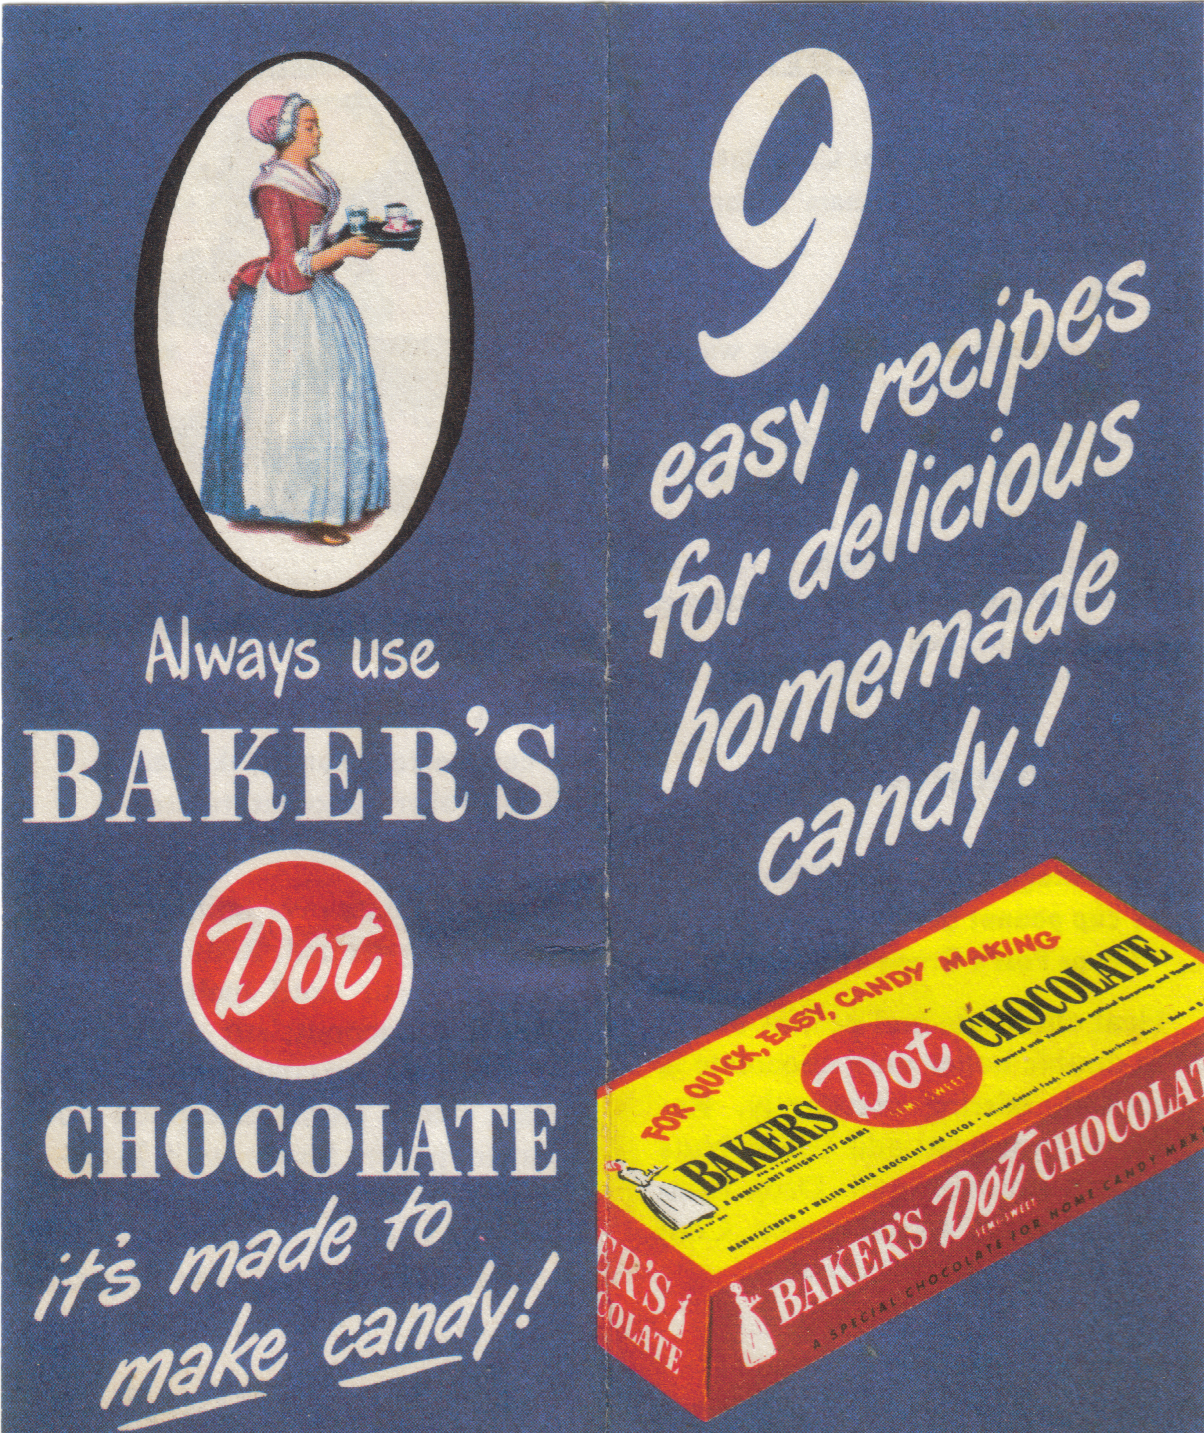 Grannie Pantries: Recipes from Baker's Dot Chocolate (not bakers ...